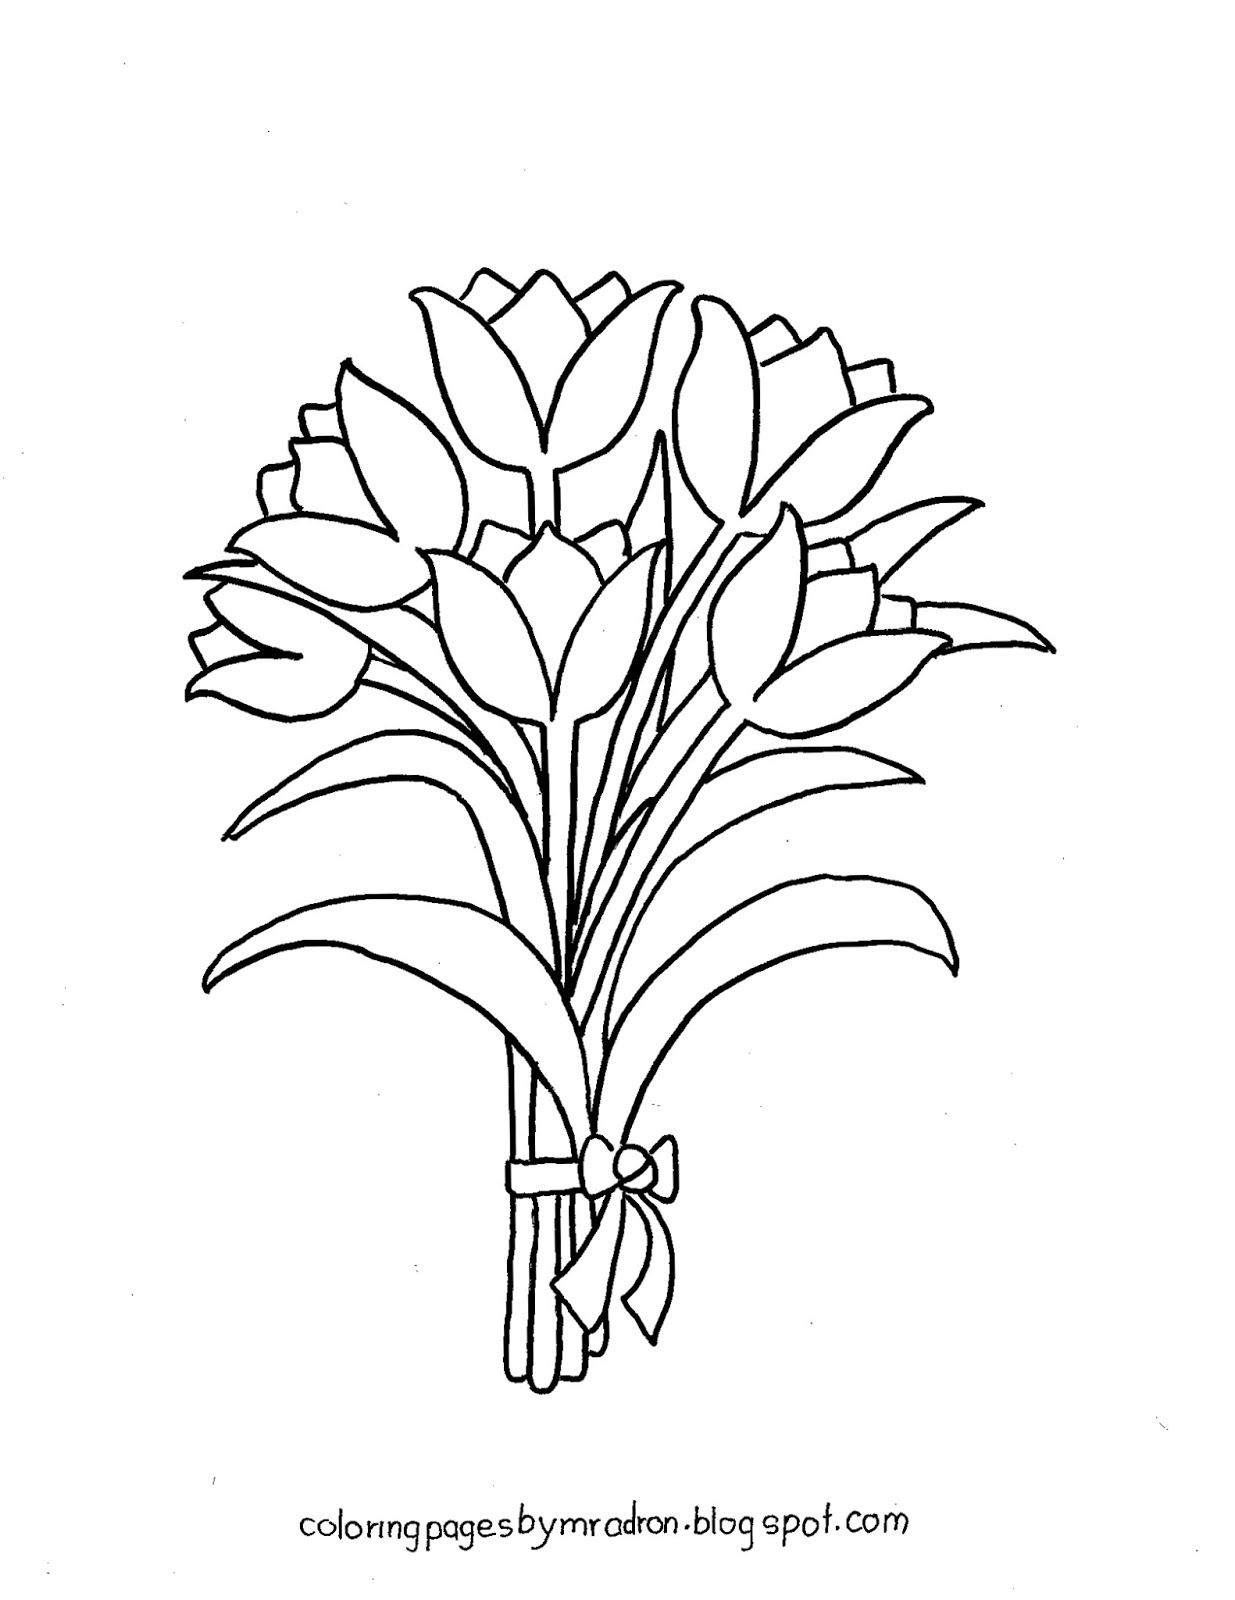 Coloring Pages for Kids by Mr. Adron: Printable Tulips Bunch with ...